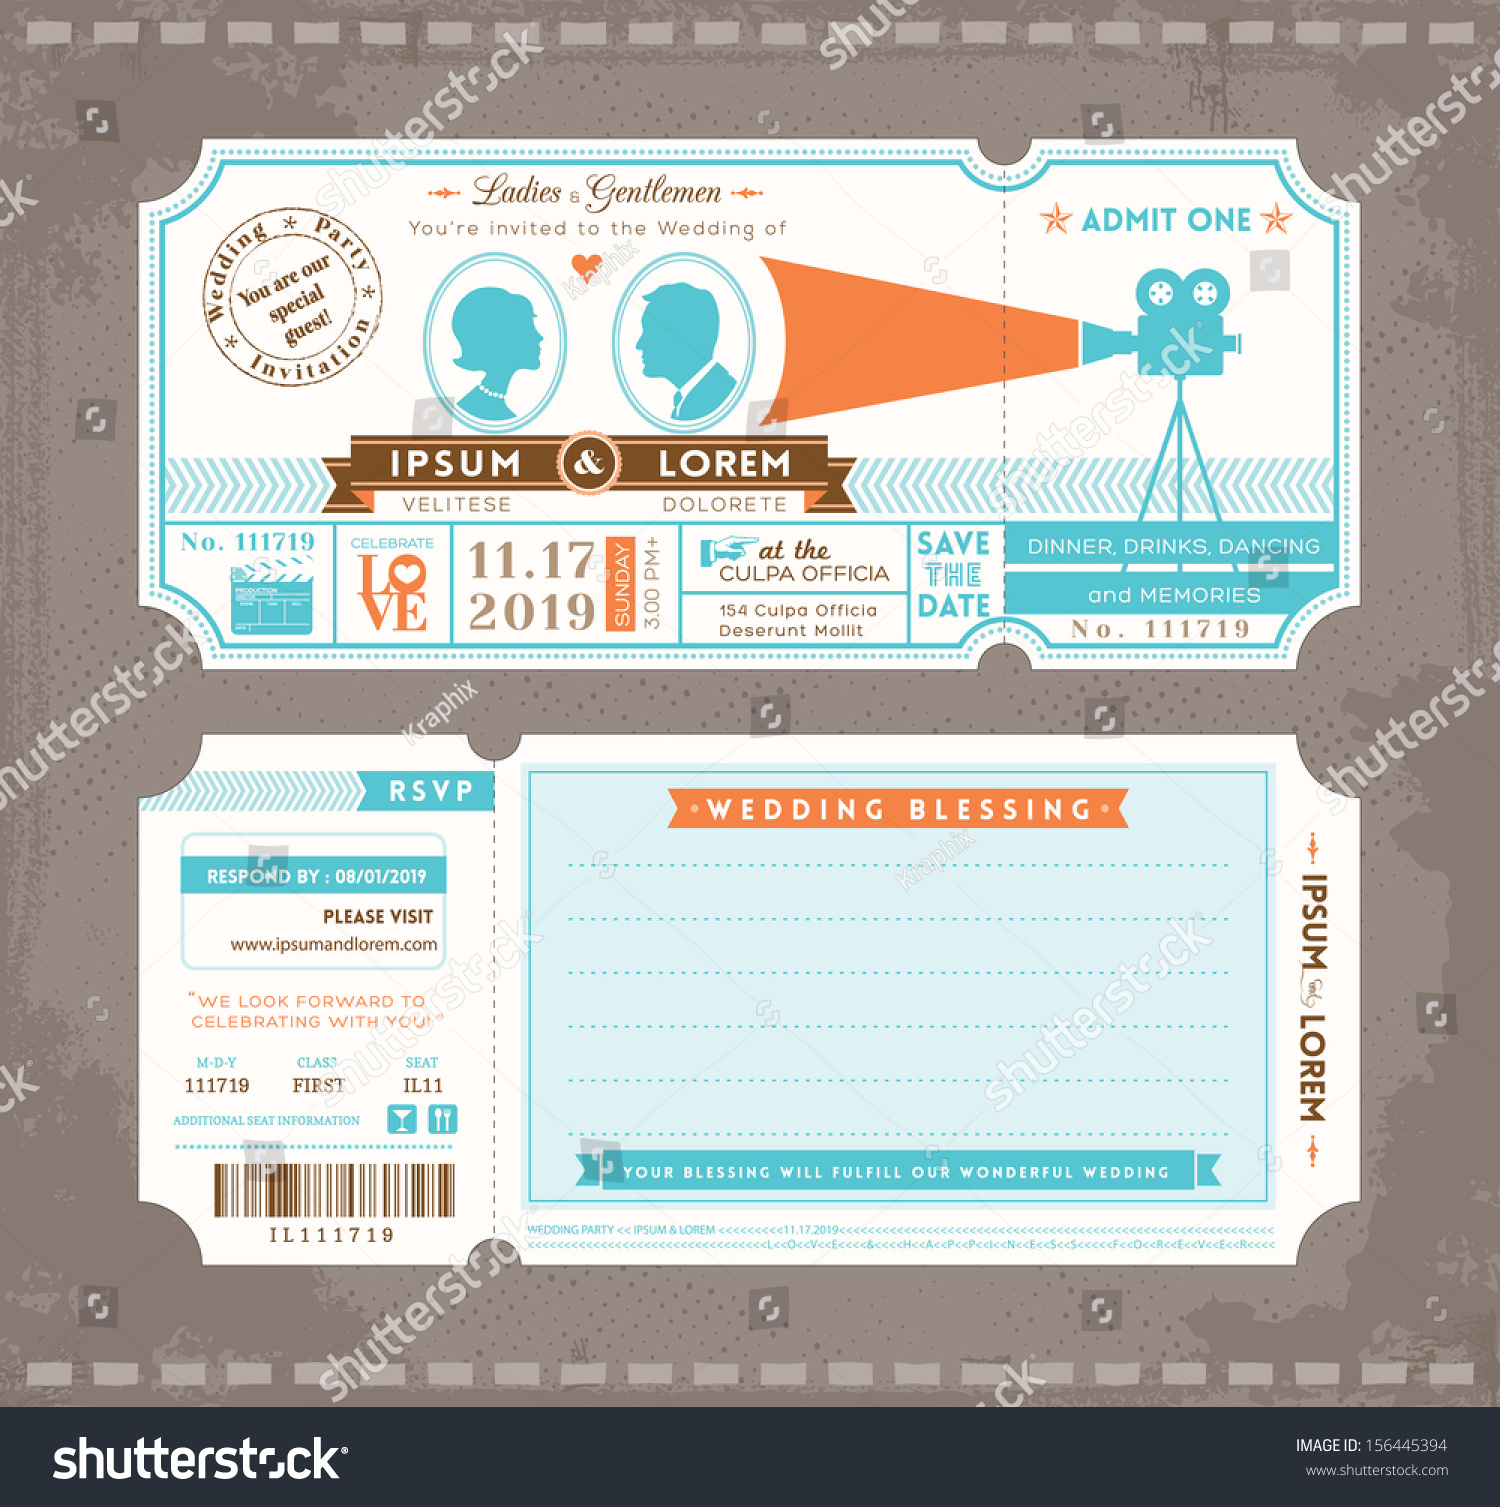 vector movie ticket wedding invitation design template - Movie Ticket Wedding Invitations